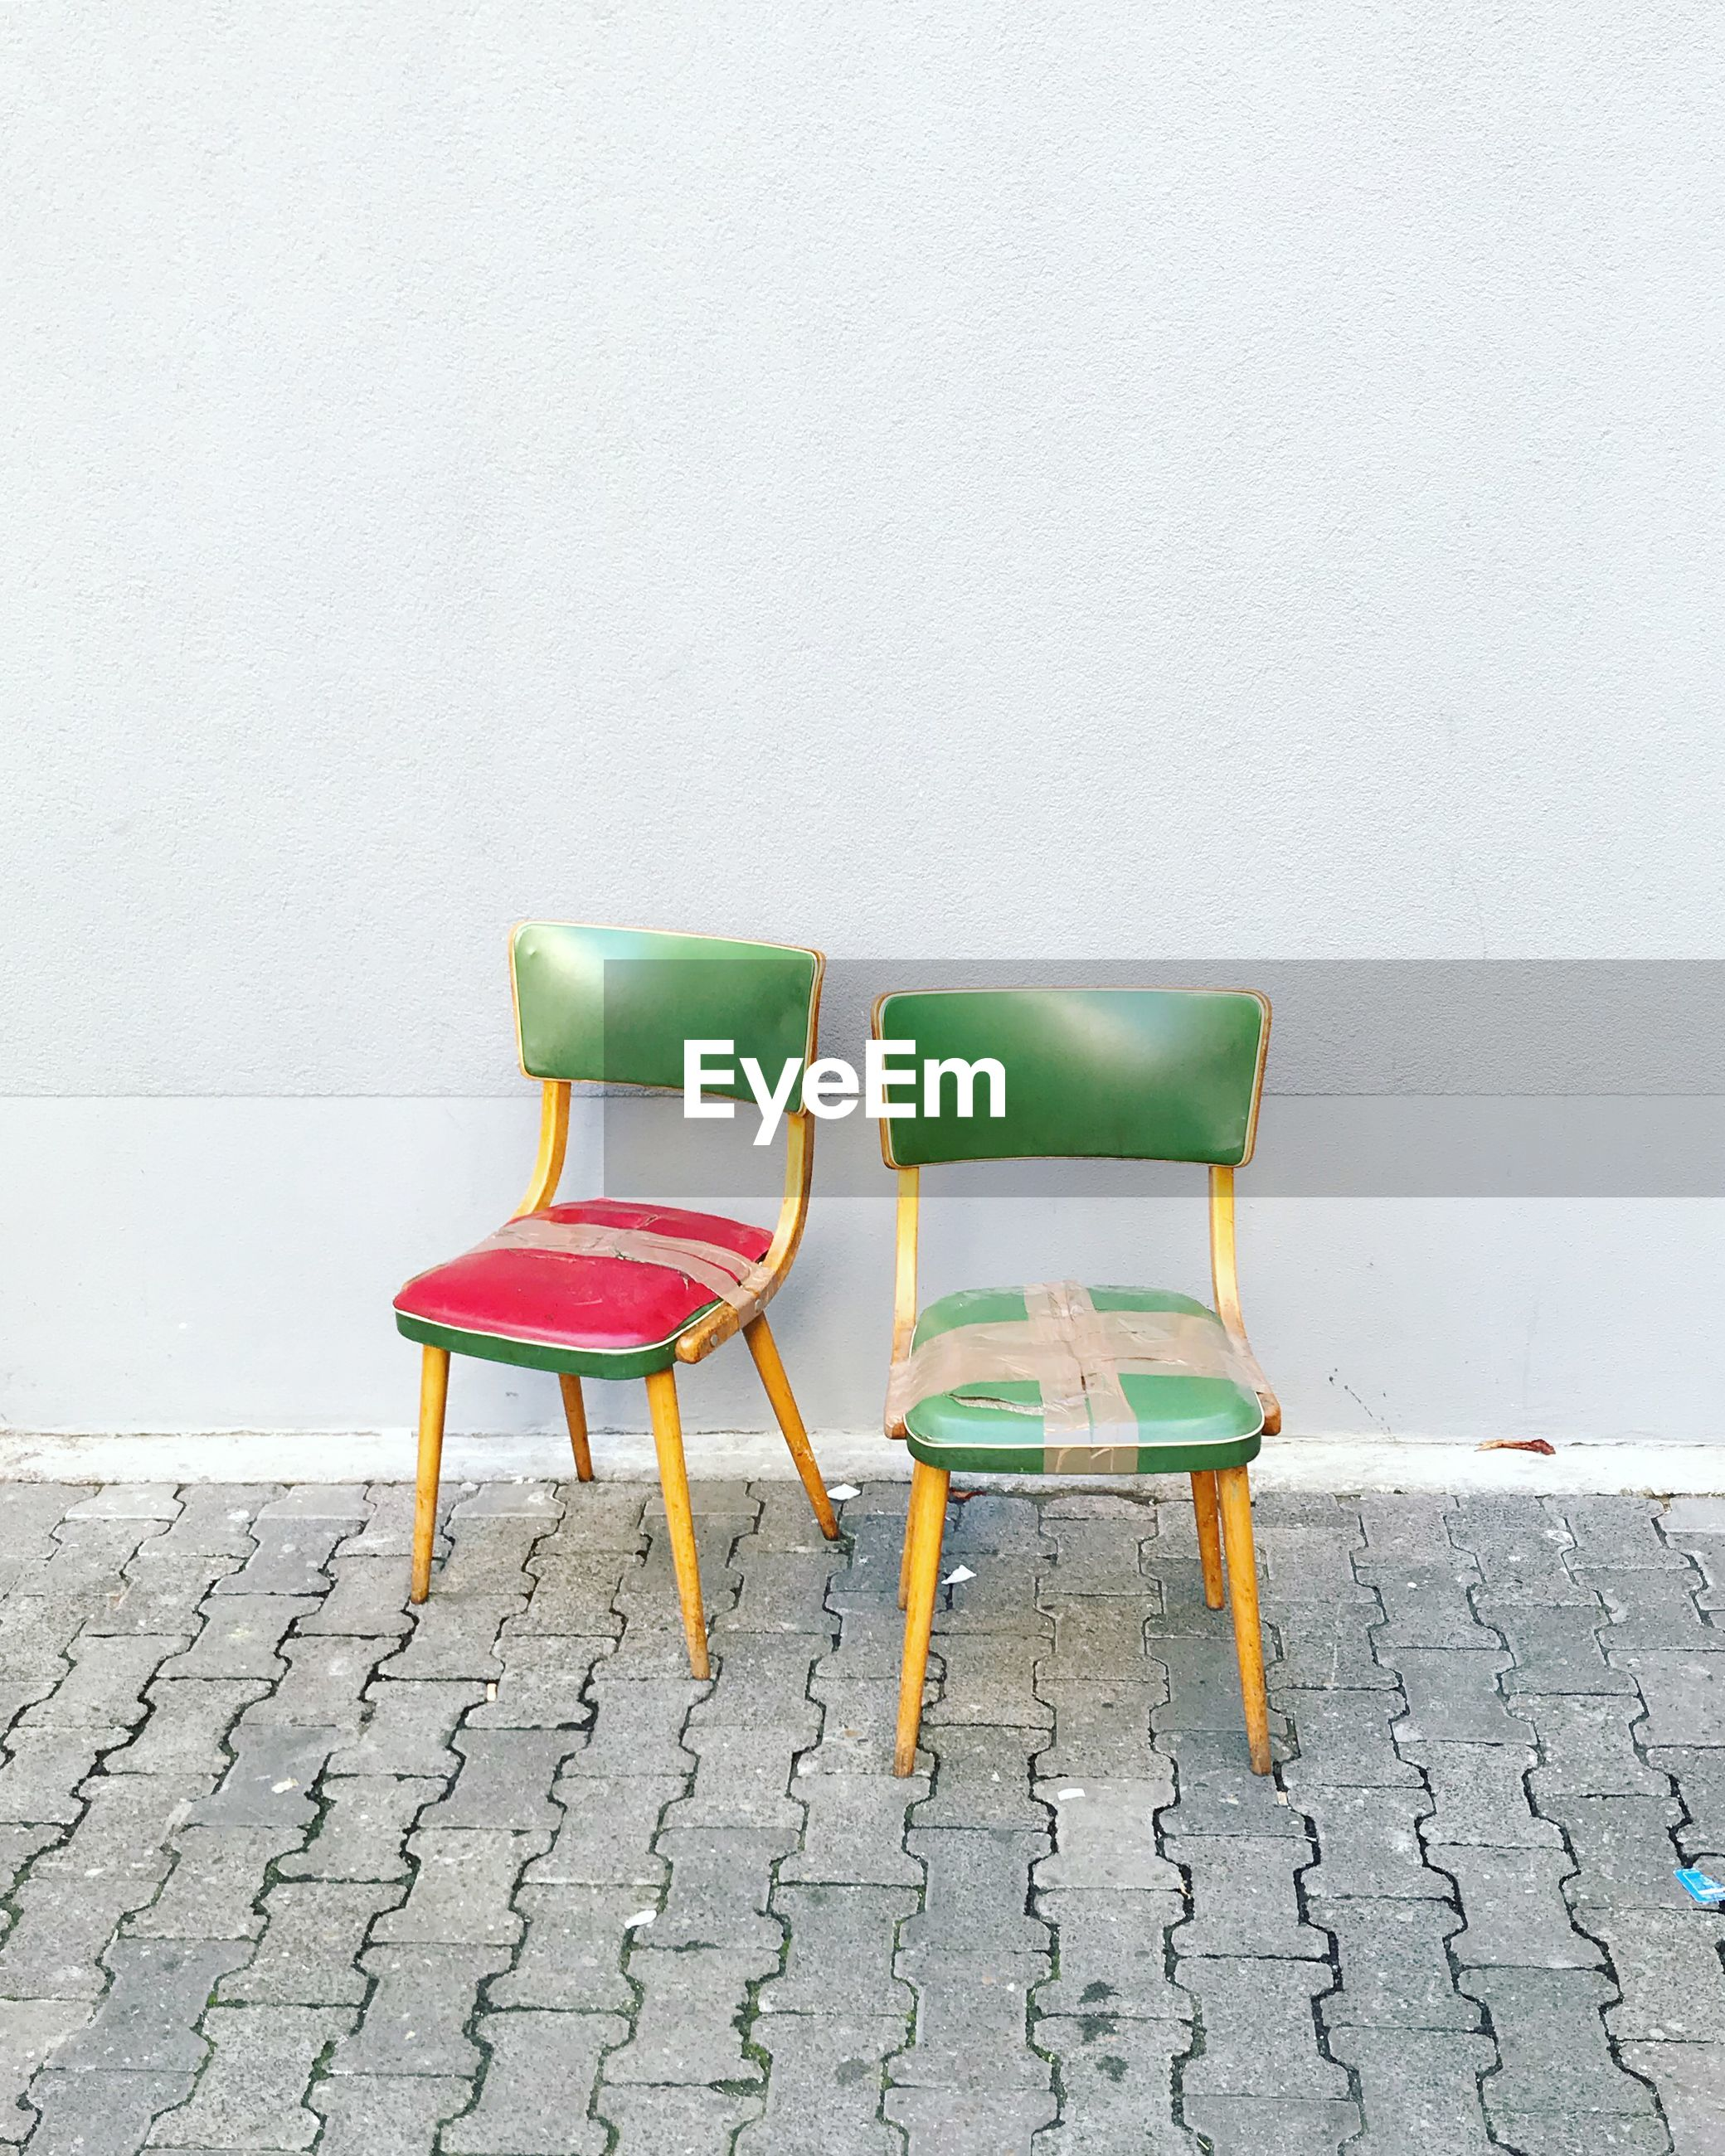 EMPTY CHAIR AGAINST WHITE BACKGROUND